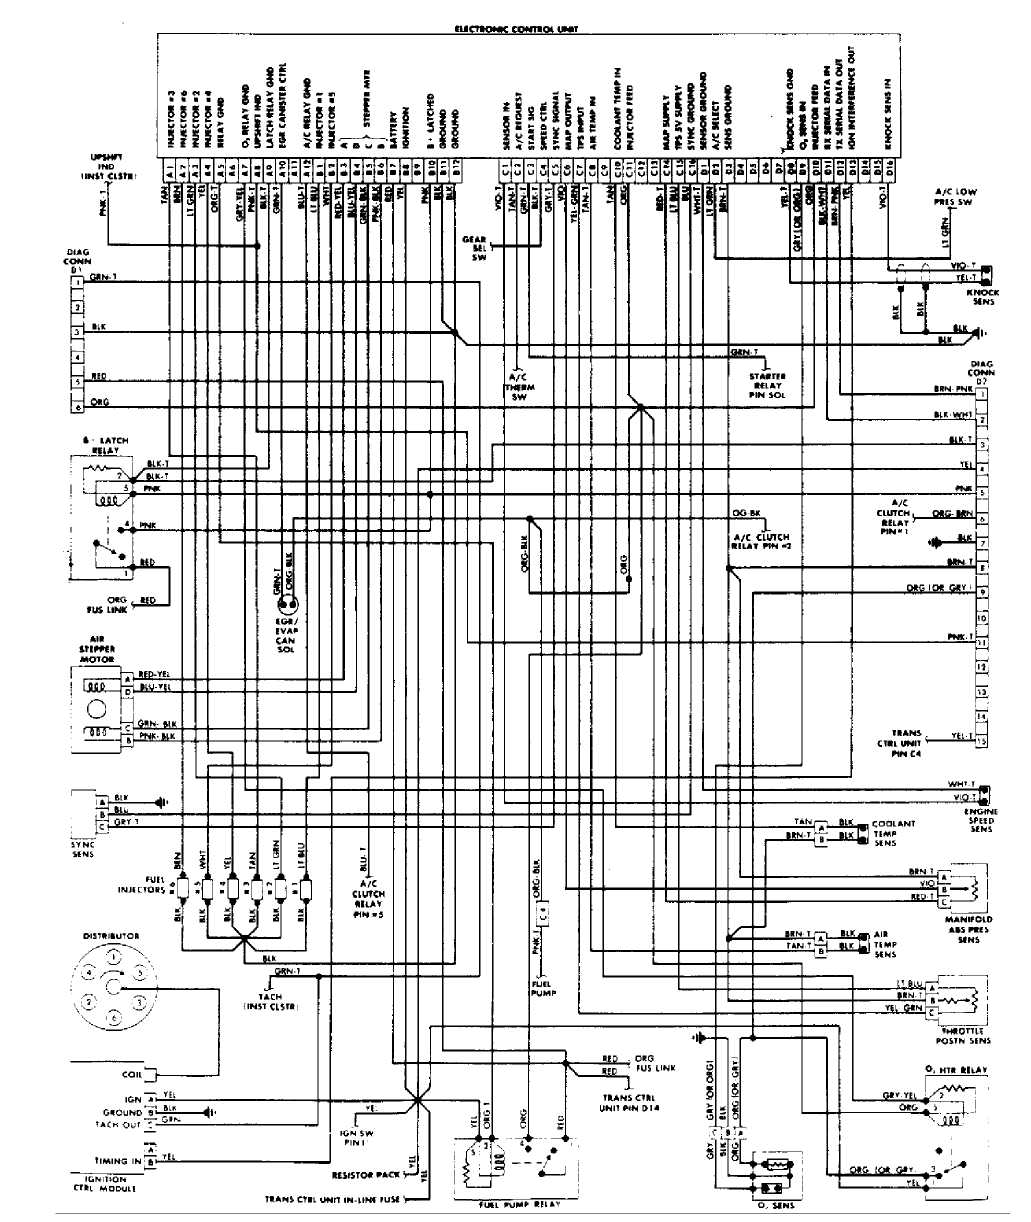 Groovy Fuel Injection System Diagram On Jeep Cherokee For Fuel Injection Dandim Mohammedshrine Wiring Diagrams Dandimmohammedshrineorg